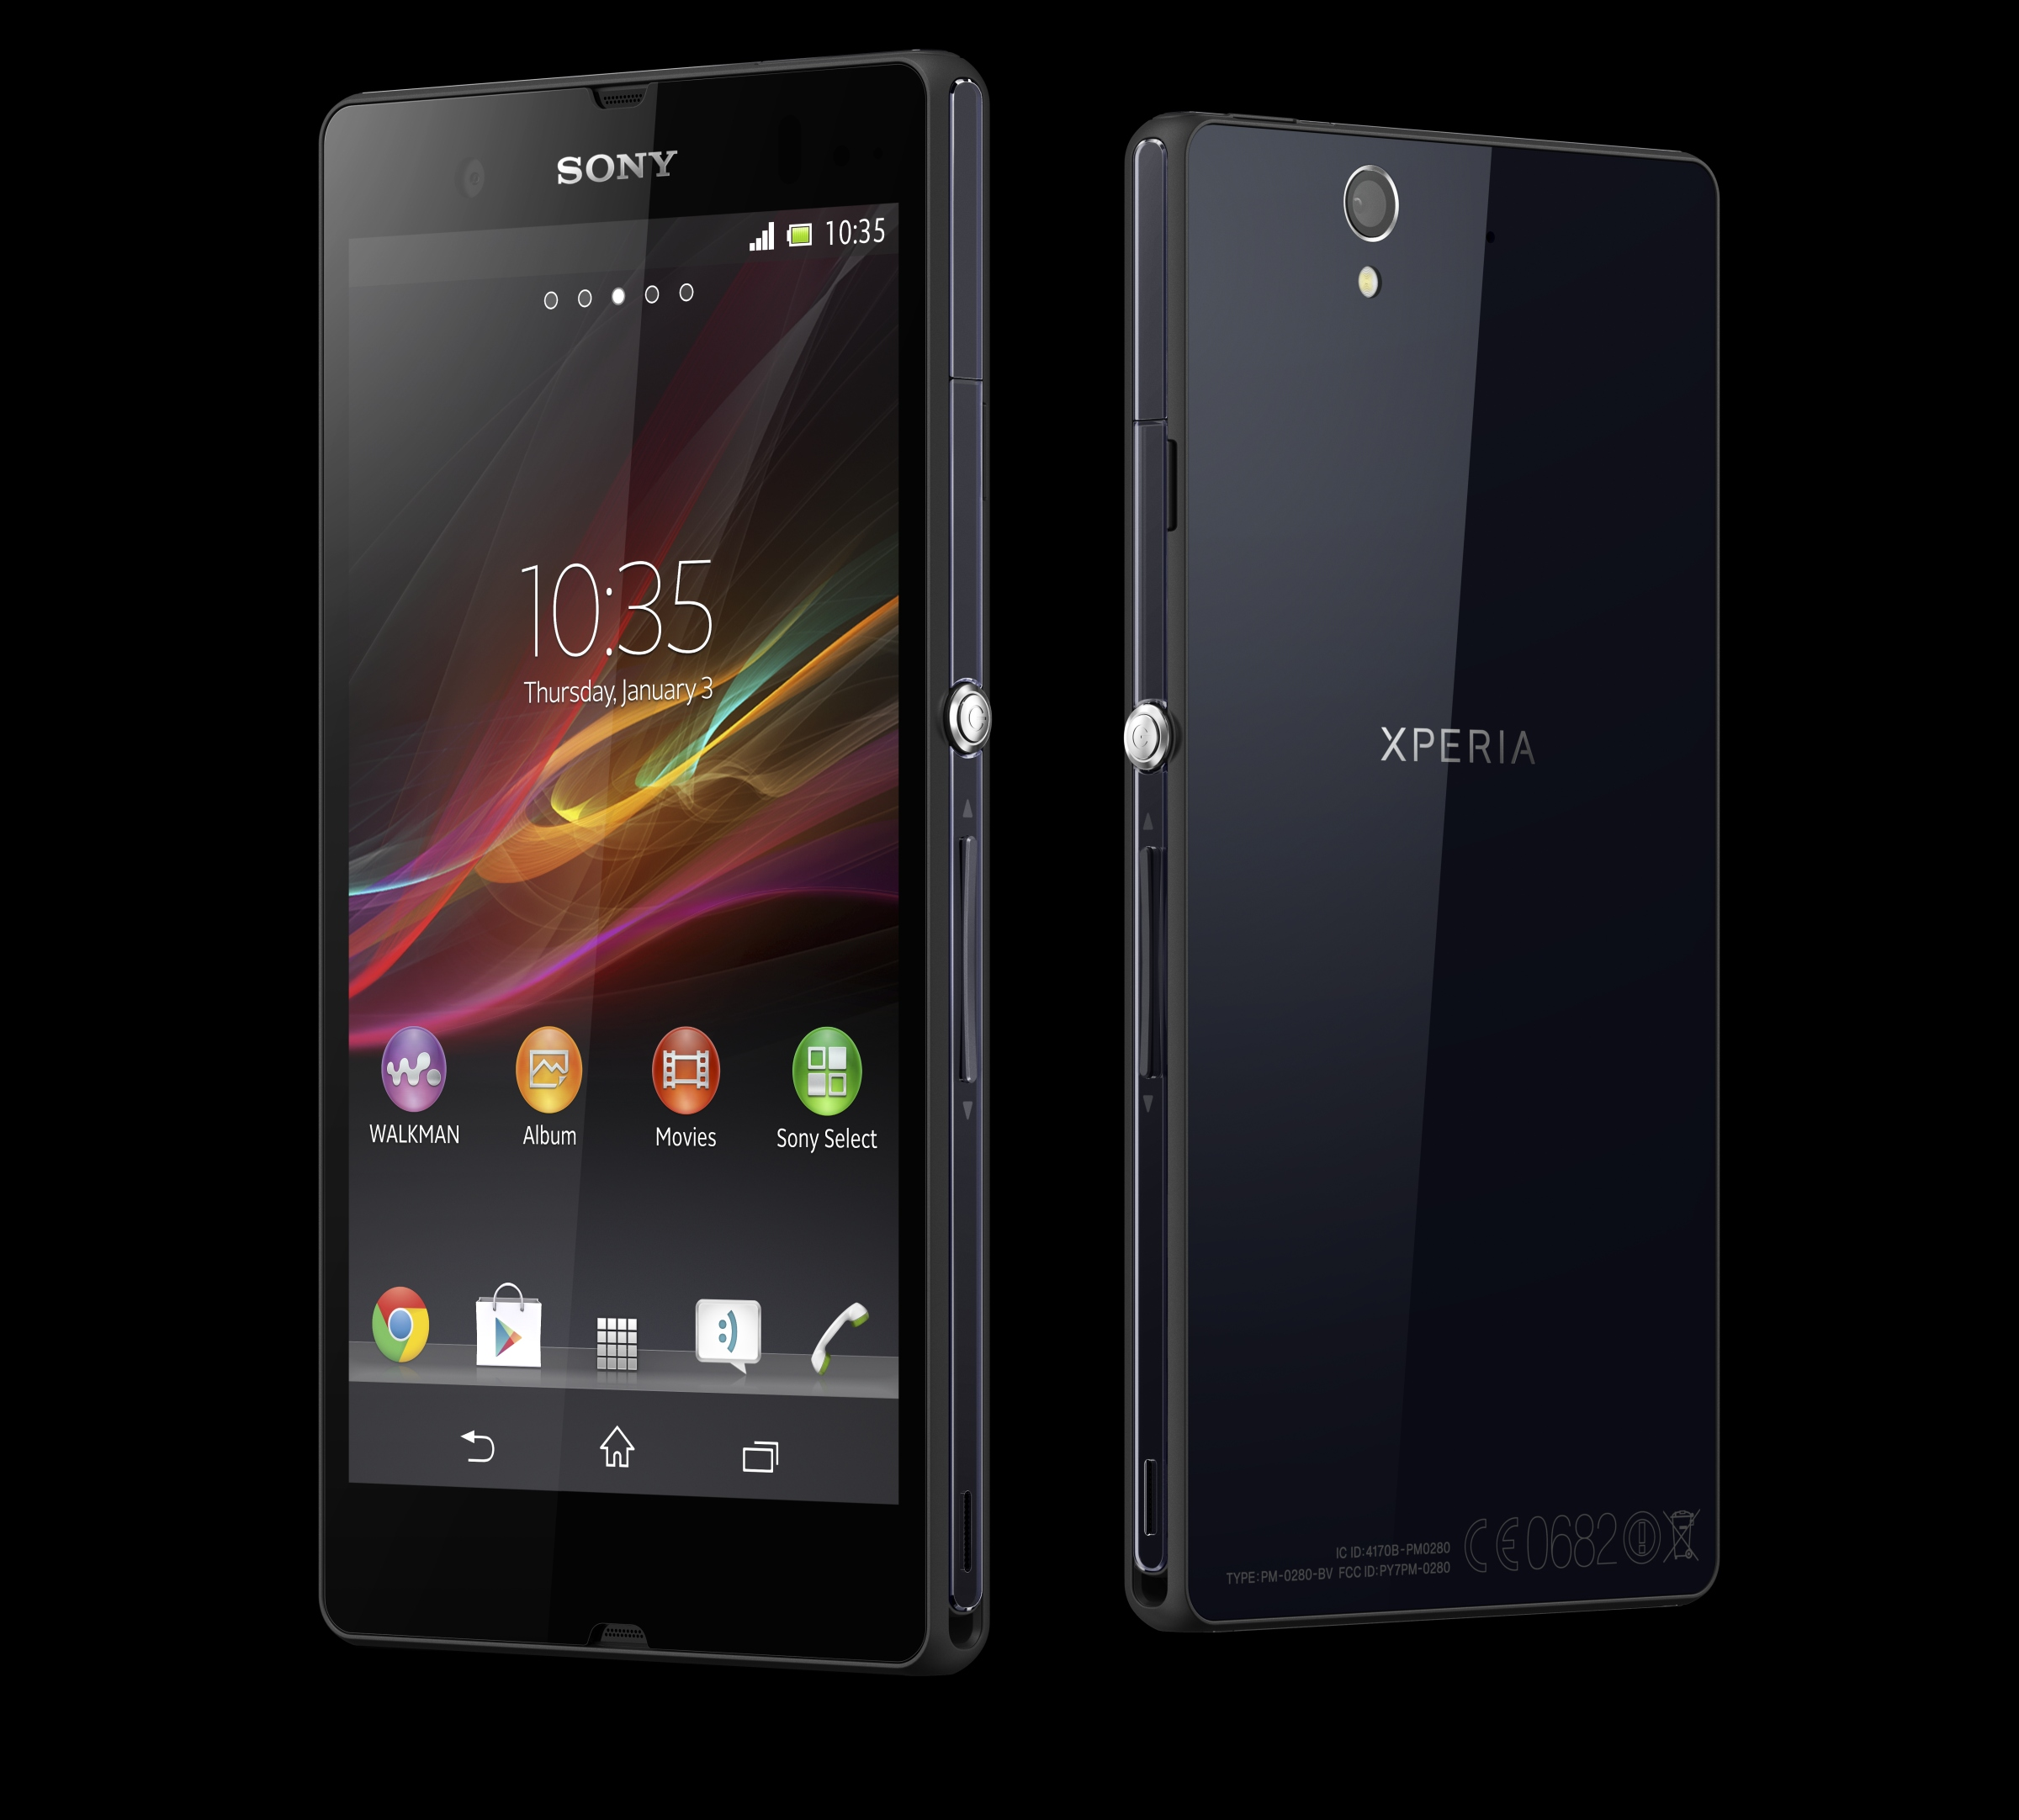 Sony Xperia Z front and side view